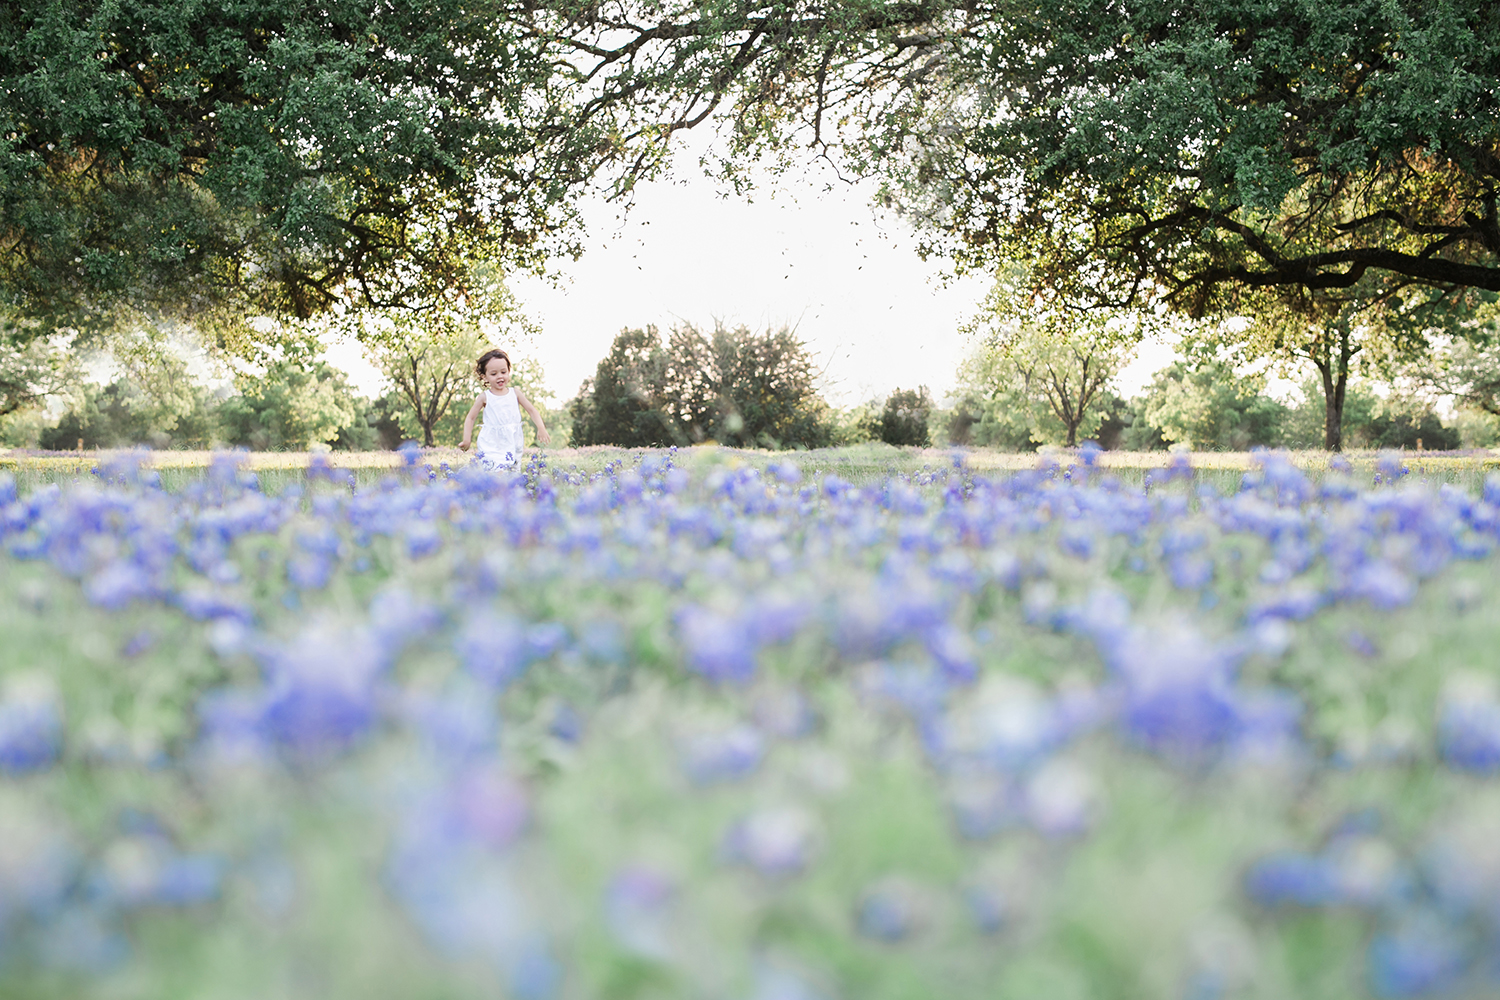 austin-bluebonnet-wildflower-photographer-mini-portraits-03.jpg